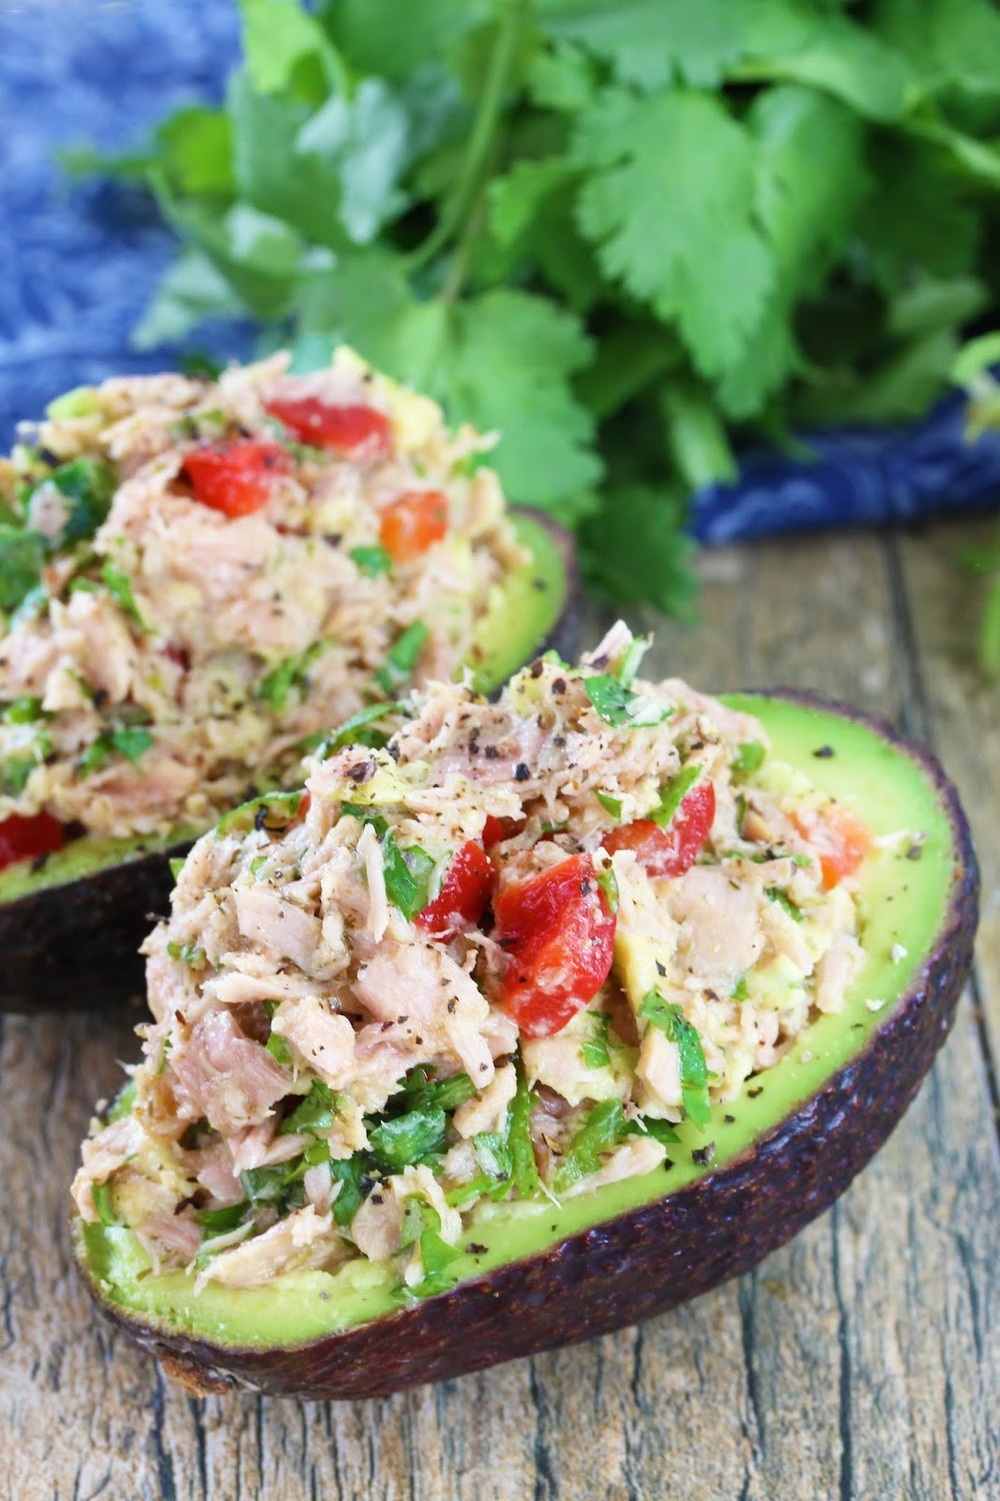 Avocado Stuffed With Tuna Salad by Stayathomechef